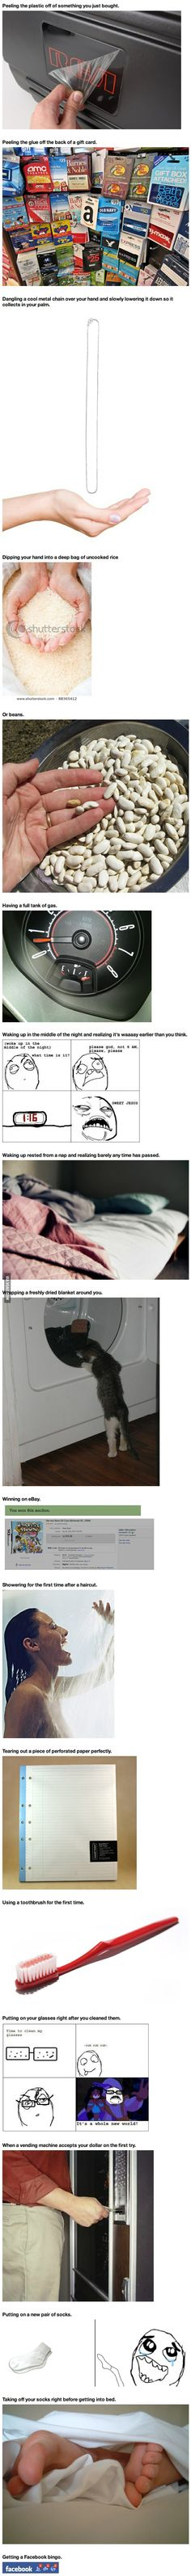 9GAG - The best things in the world